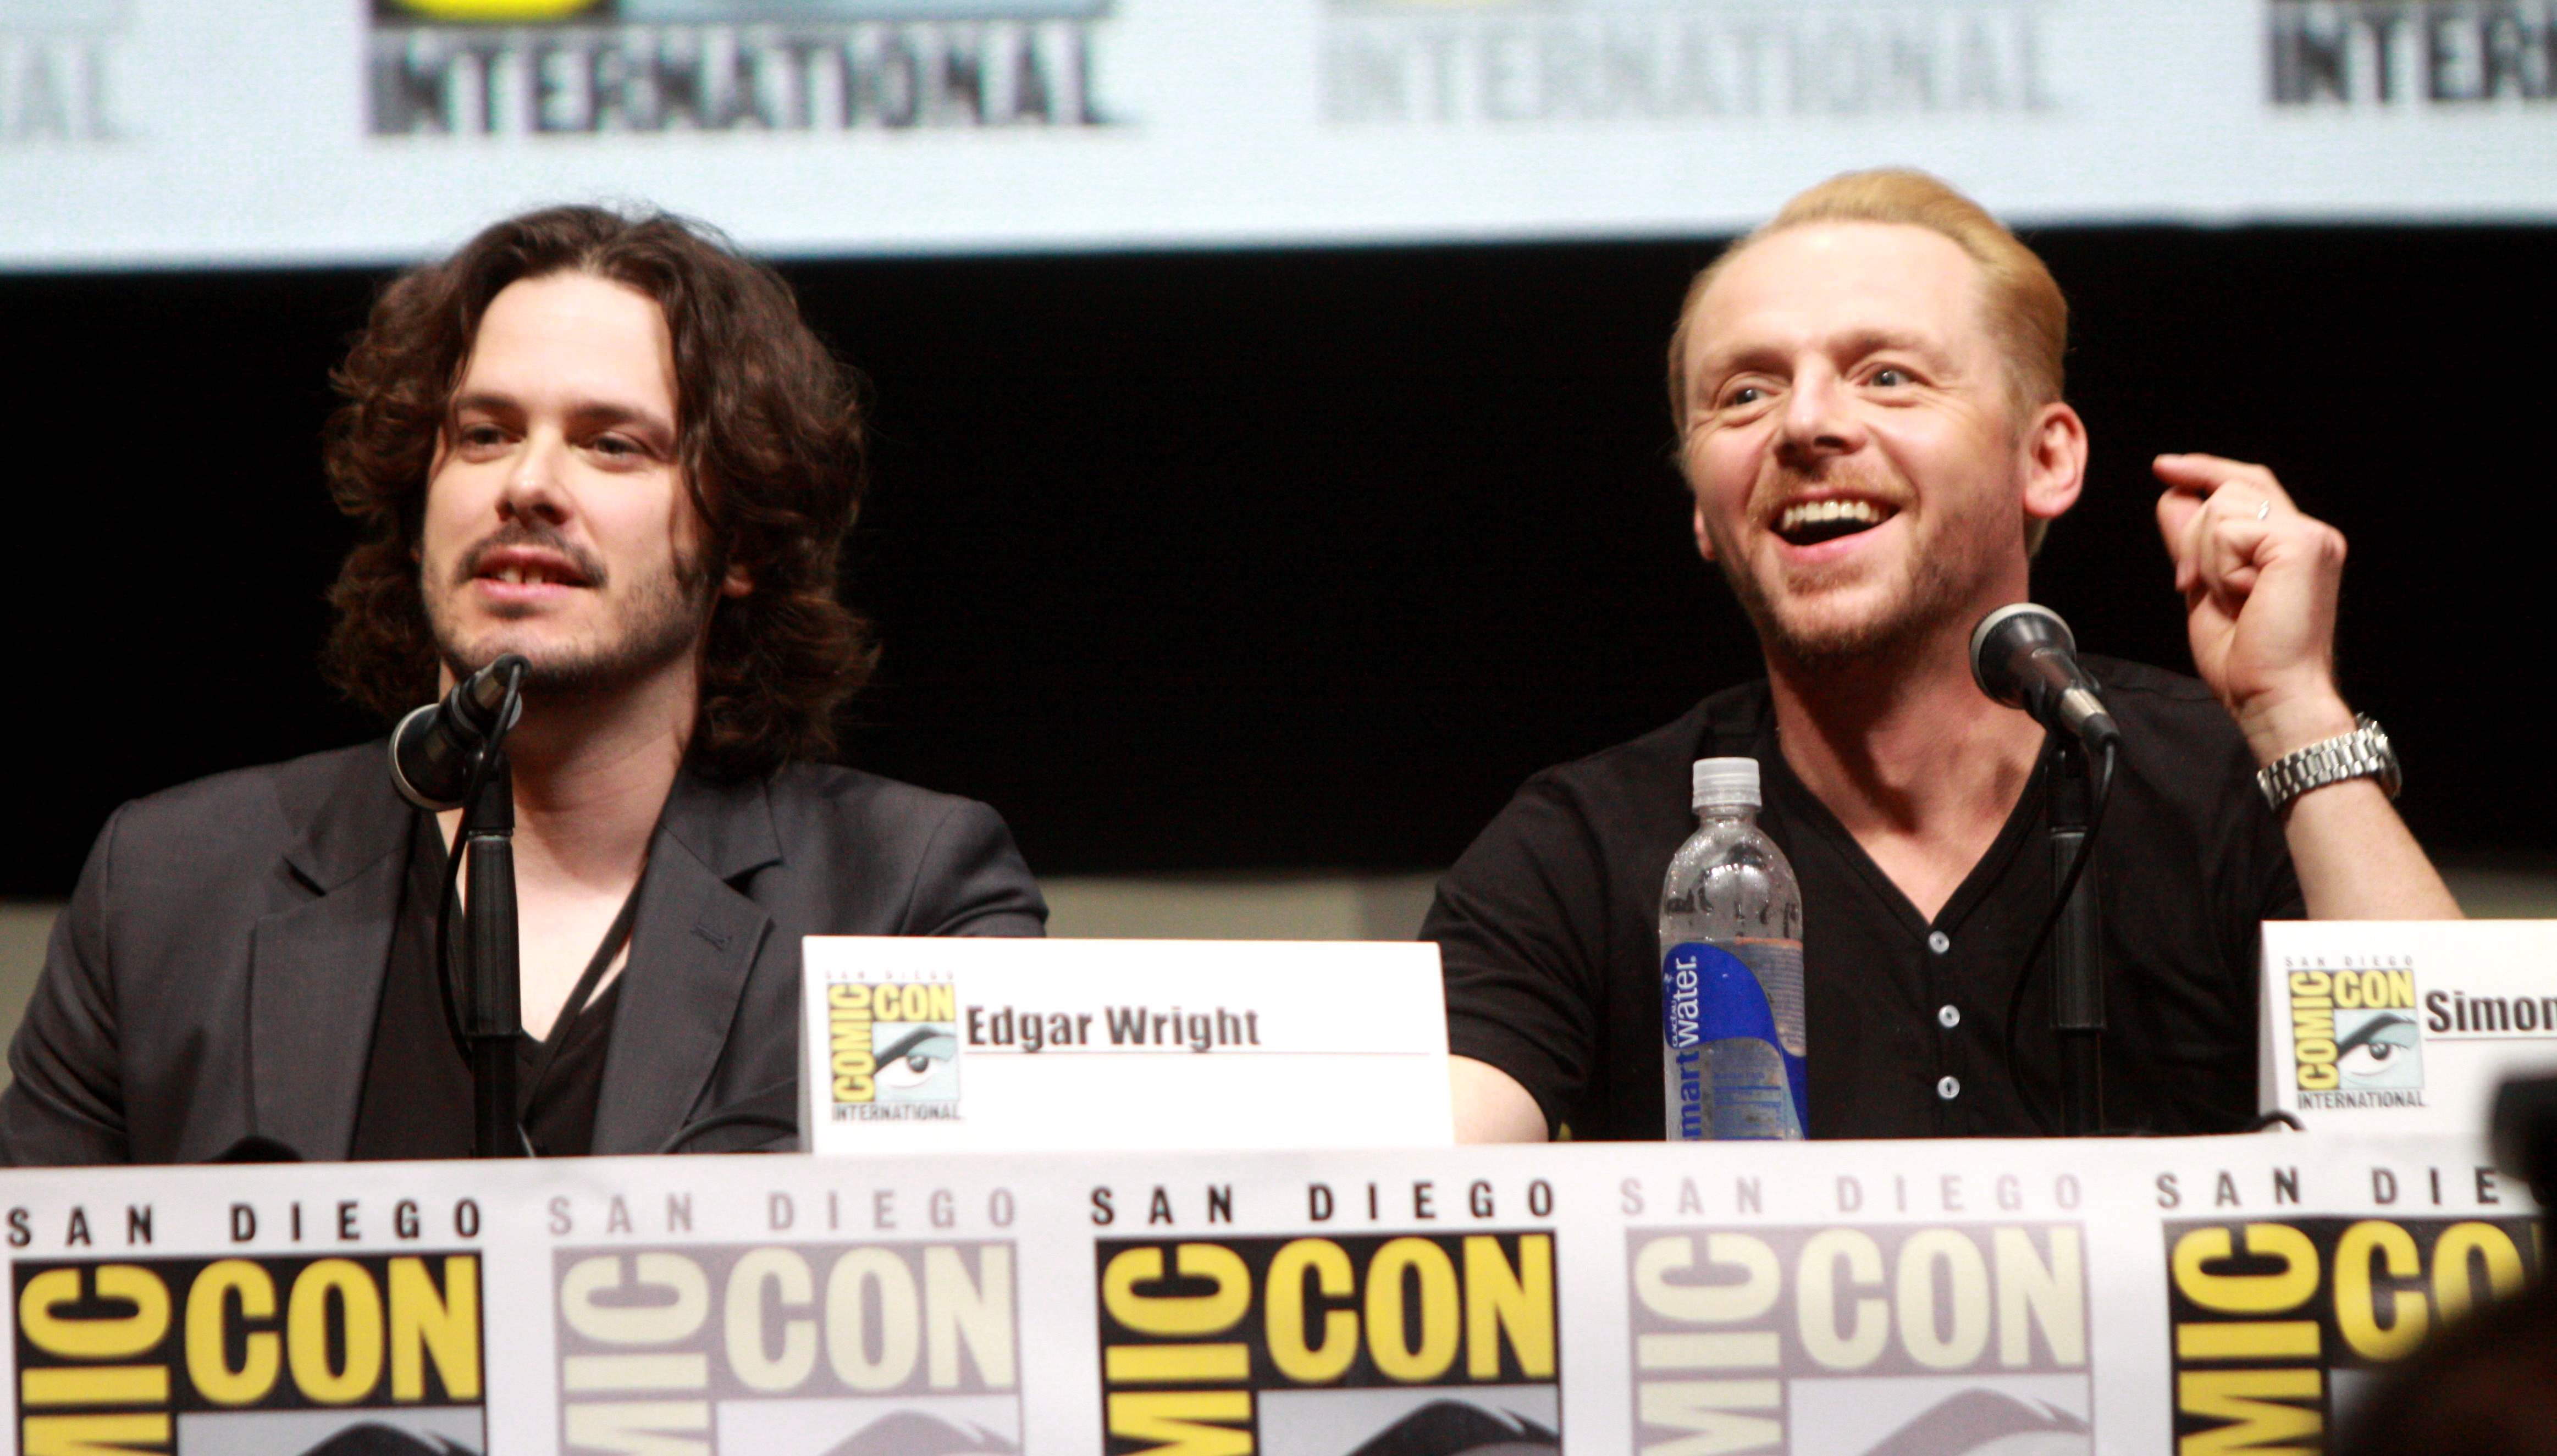 Edgar Wright and Simon Pegg, creators of the popular Cornetto Trilogy